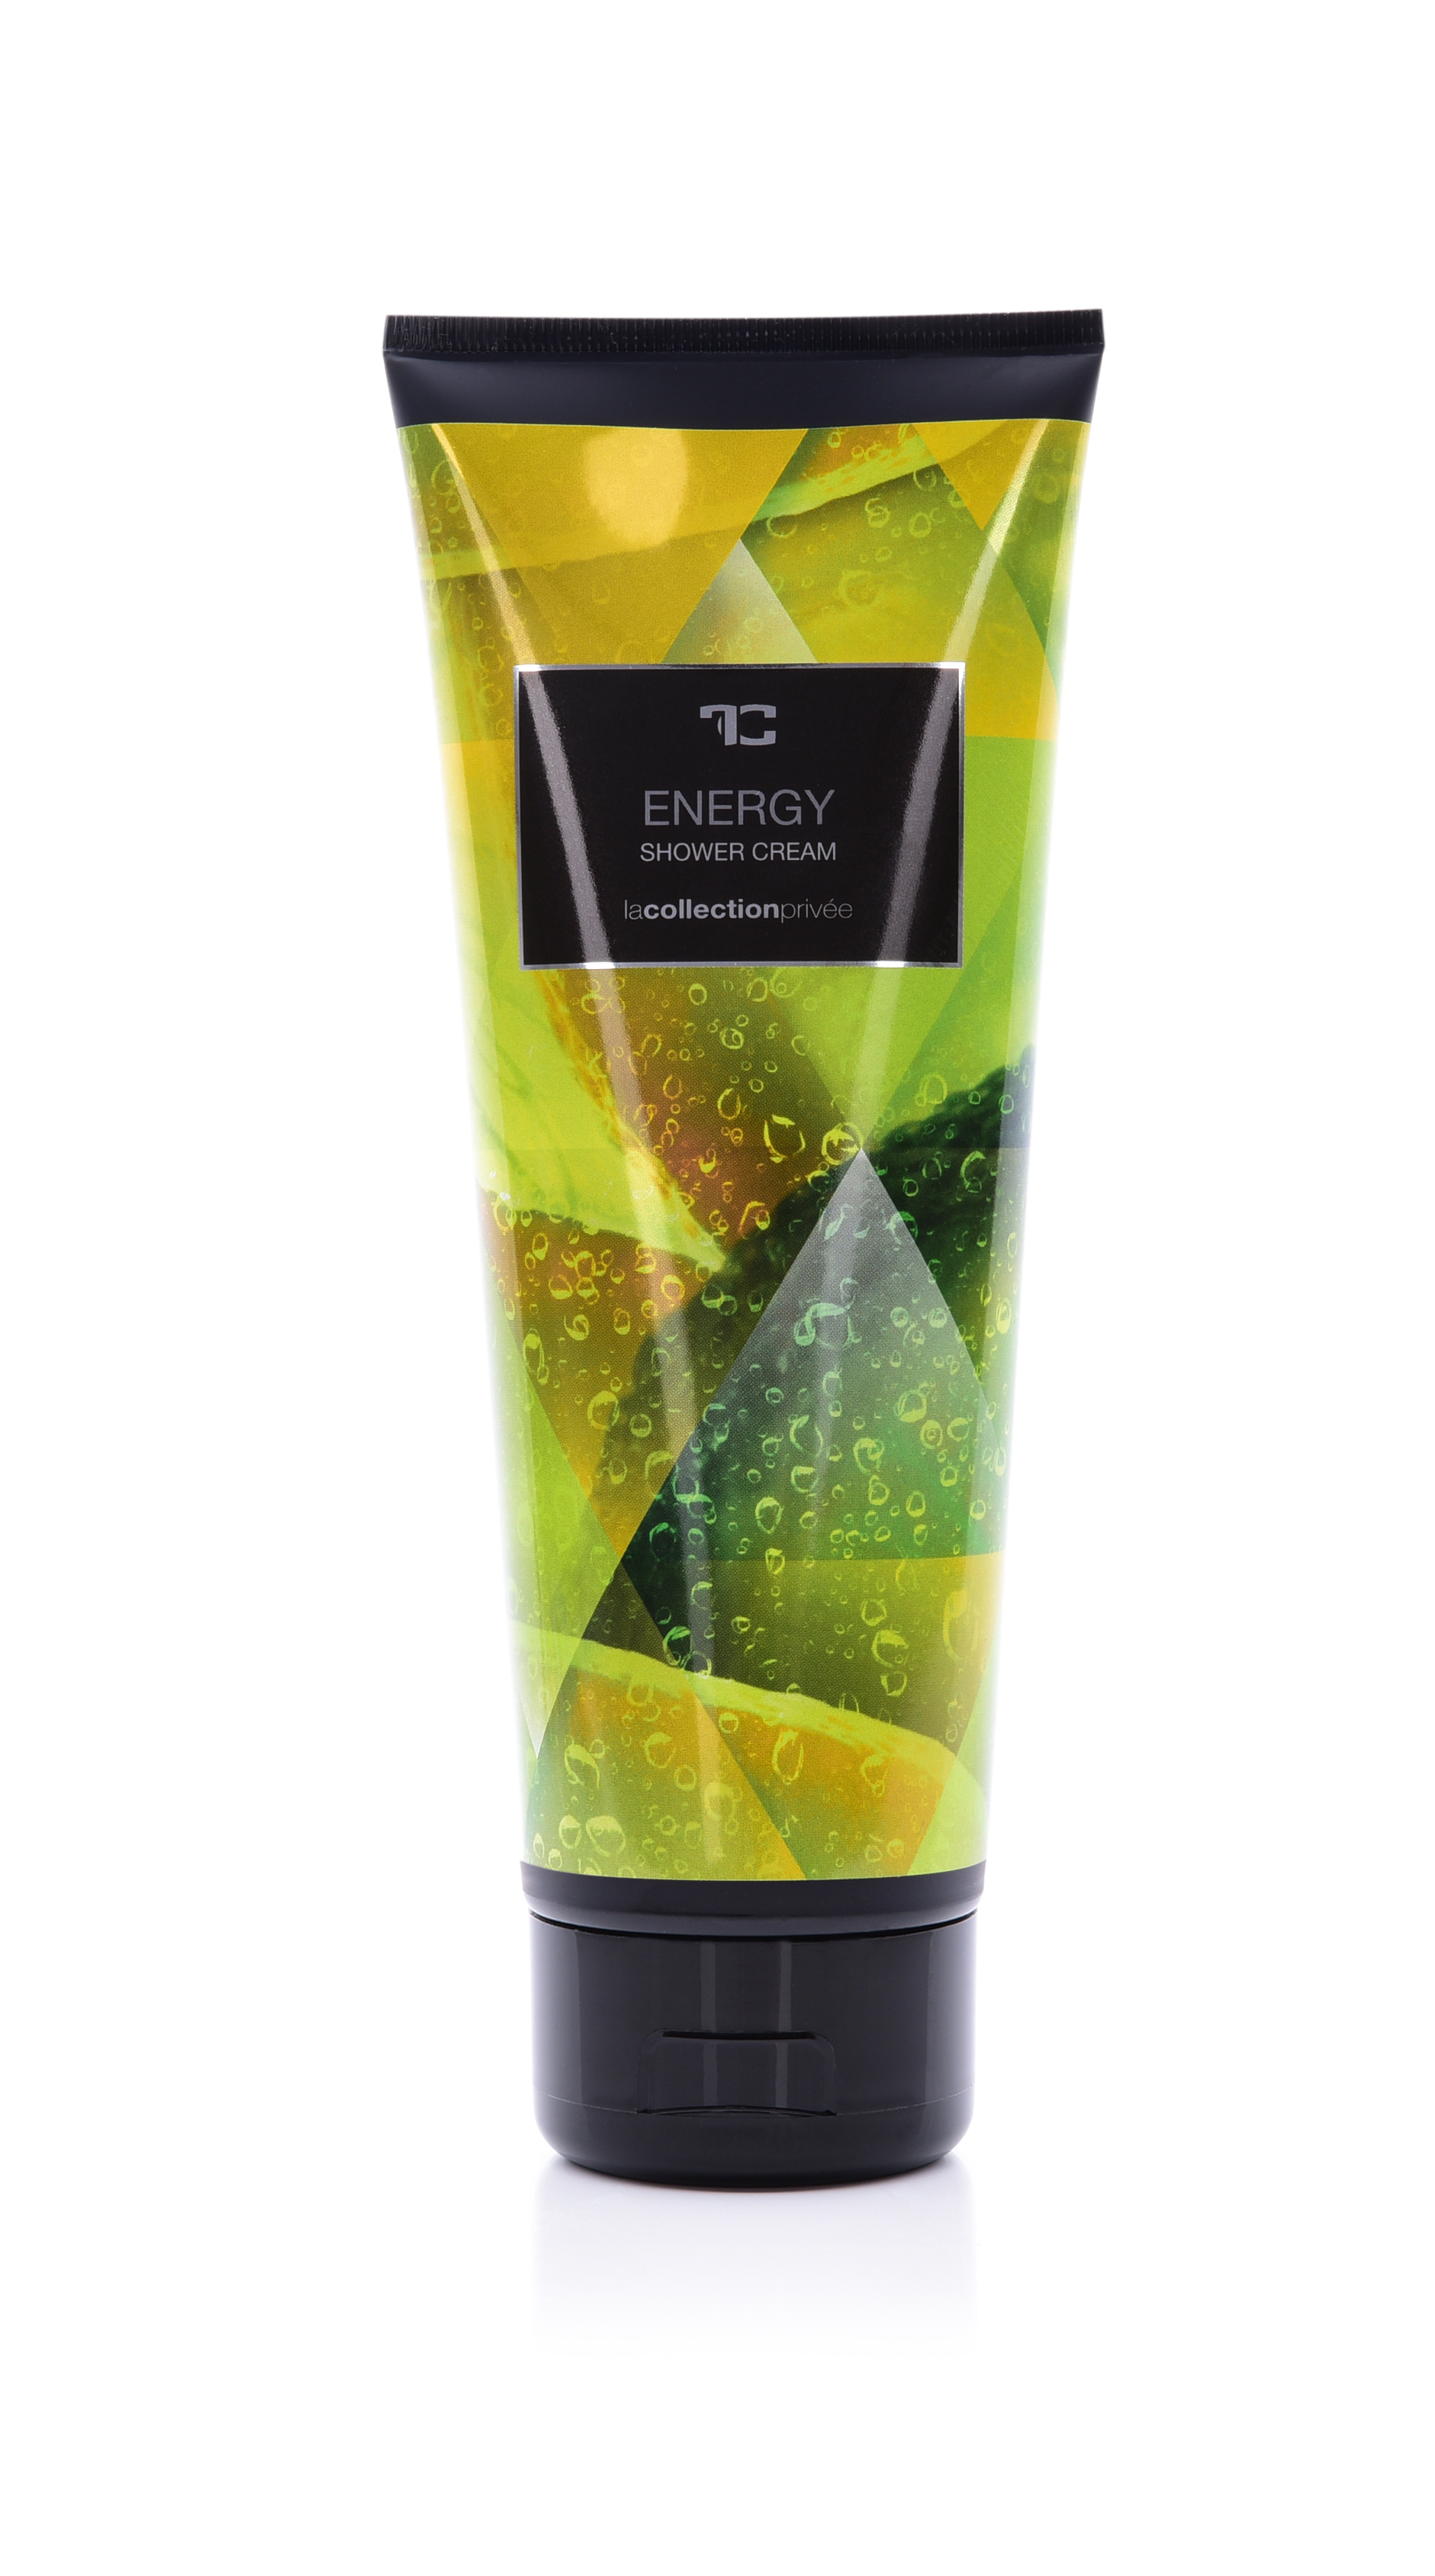 SHOWER CREAM energy, sprchový gel, LA COLLECTION PRIVÉE